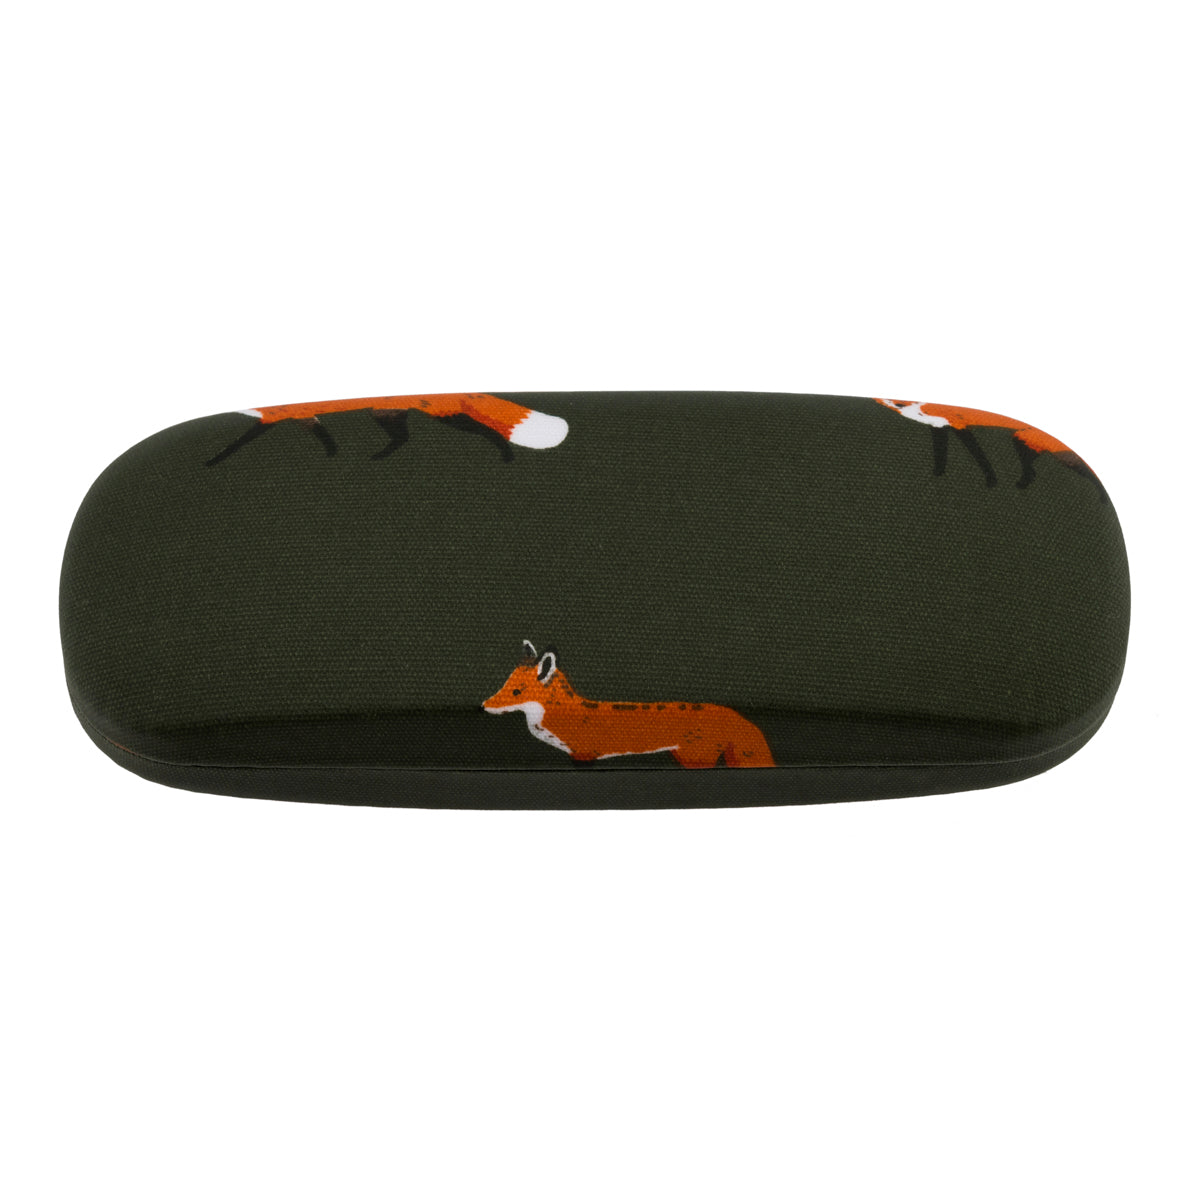 Foxes Glasses Hard Case